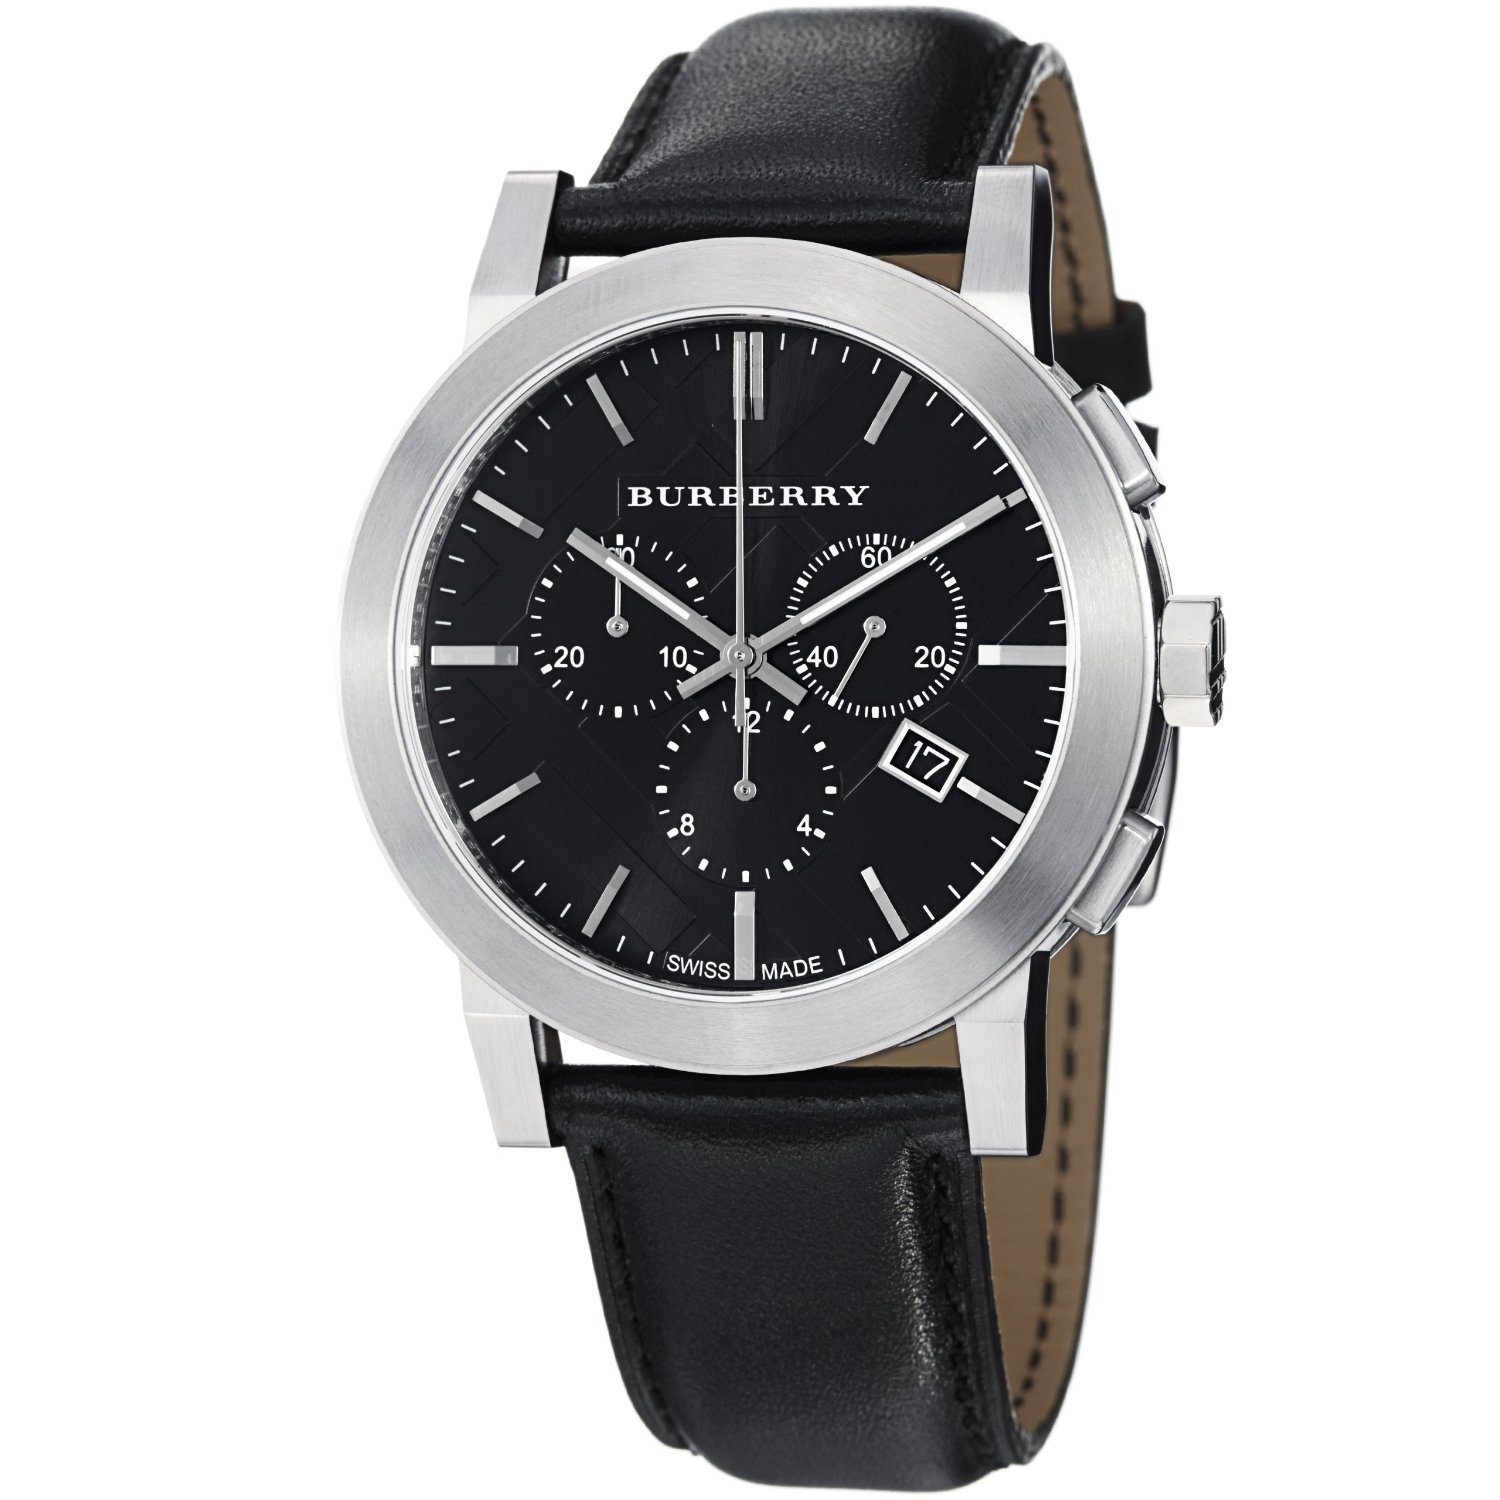 Burberry bu9356 stainless steel leather anti reflective men 39 s watch for Anti reflective watches